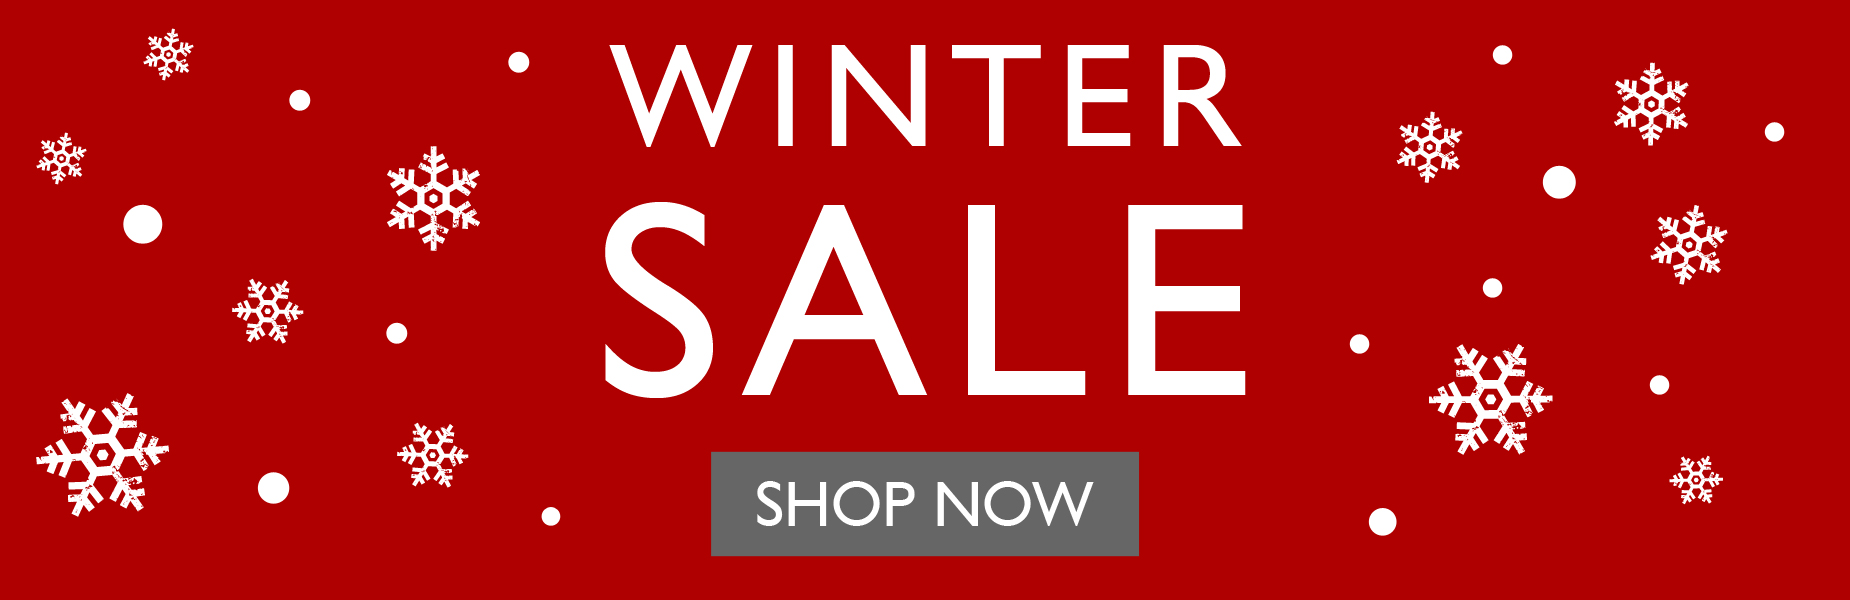 Winter Sale AW20 - Shop Now